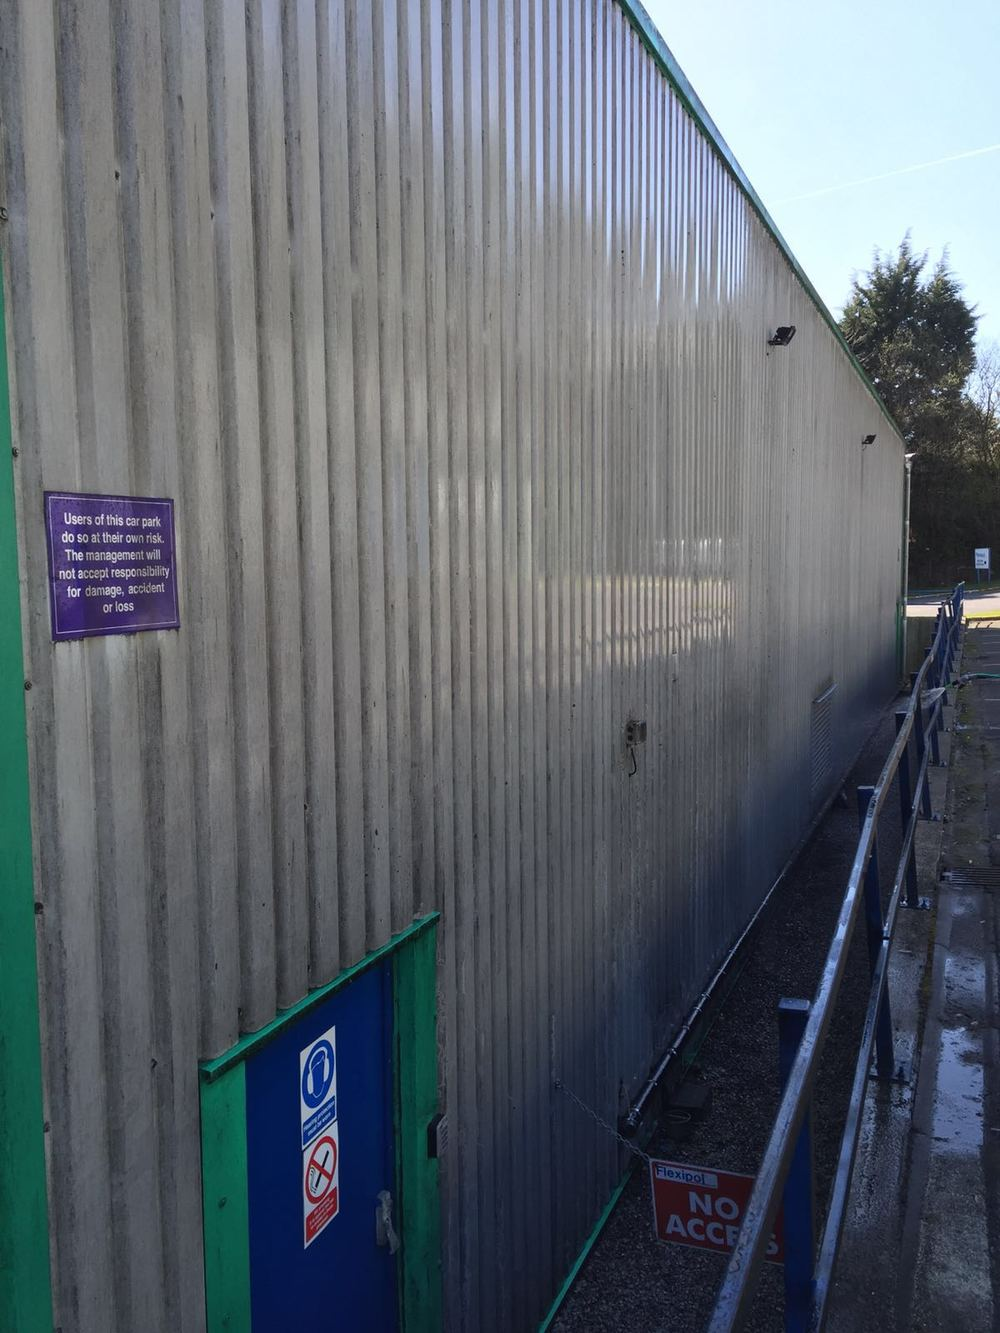 Commercial cladding Softwash treatment at a company in Helmshore, Lancashire. Before Softwash.